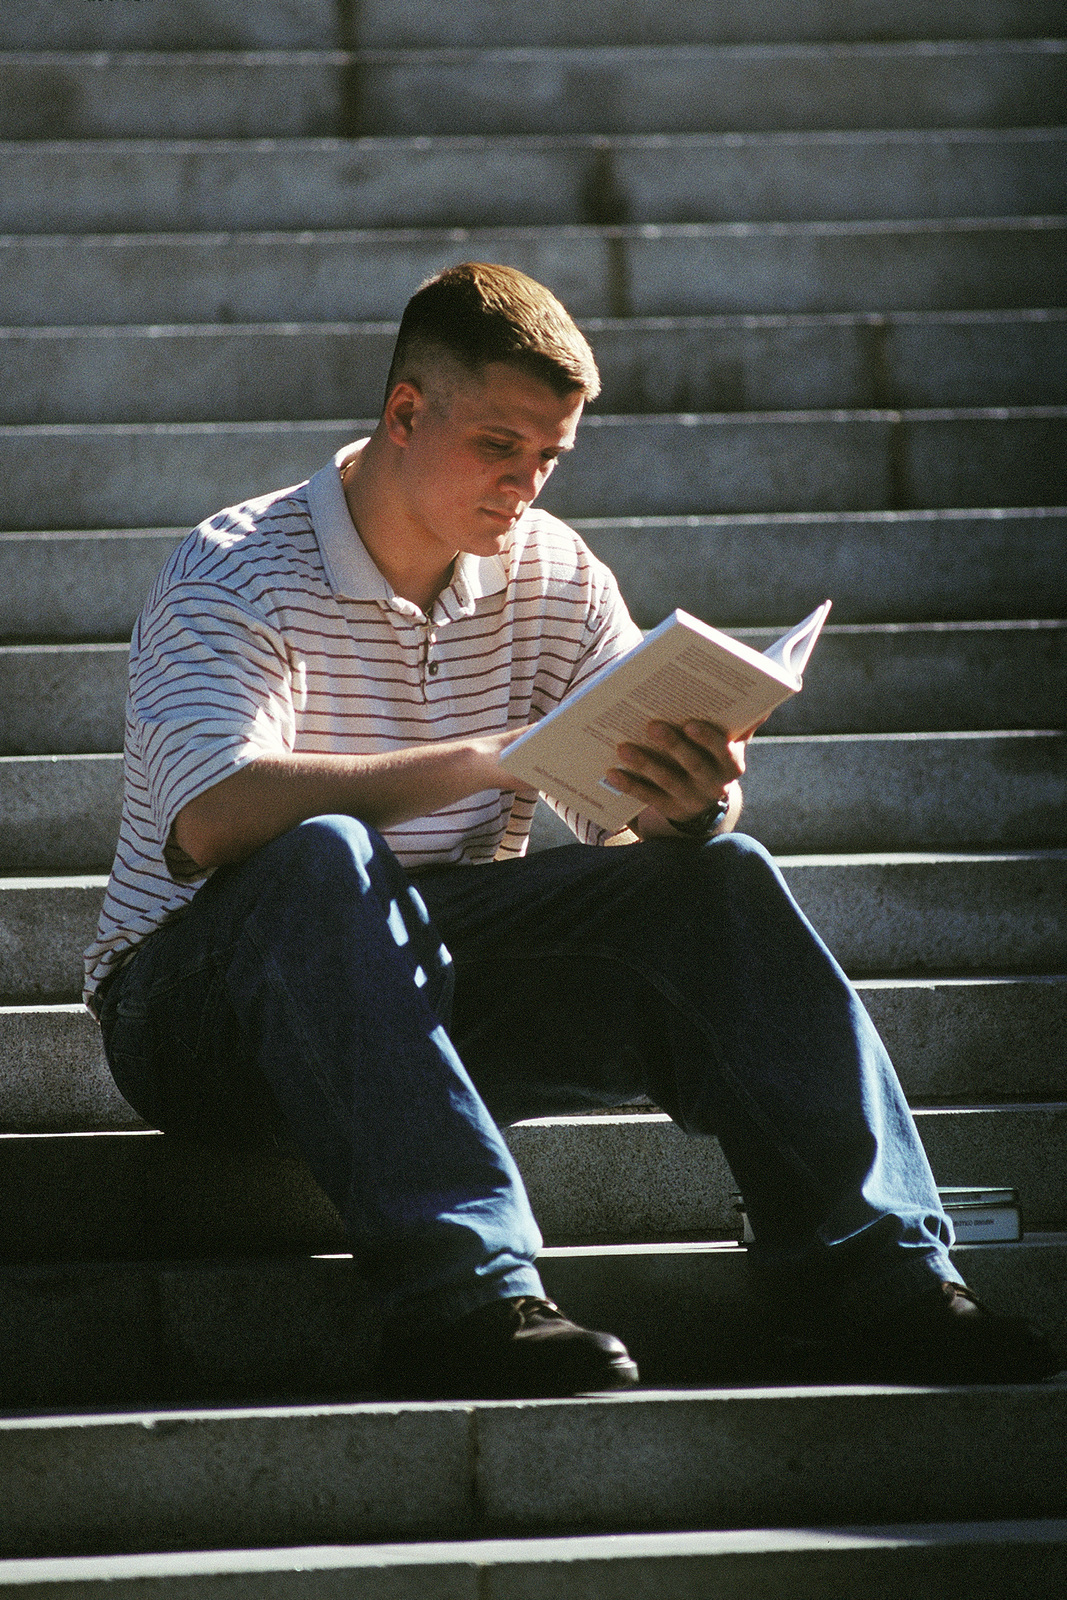 "Cadet Rob Caridad reads a textbook on the steps of Widener Library on the Harvard campus. Caridad is studying government at Harvard under an Air Force Scholorship program. Without the scholarship he would not have been able to attend the $35,000 a year institution. He reports to ROTC Detachment 365, Doolittle's Raiders, named after airpower pioneer and MIT alum General Jimmy Doolittle. Photograph used in the article ""Pillars of Education,"" from the August 1999 AIRMAN Magazine"